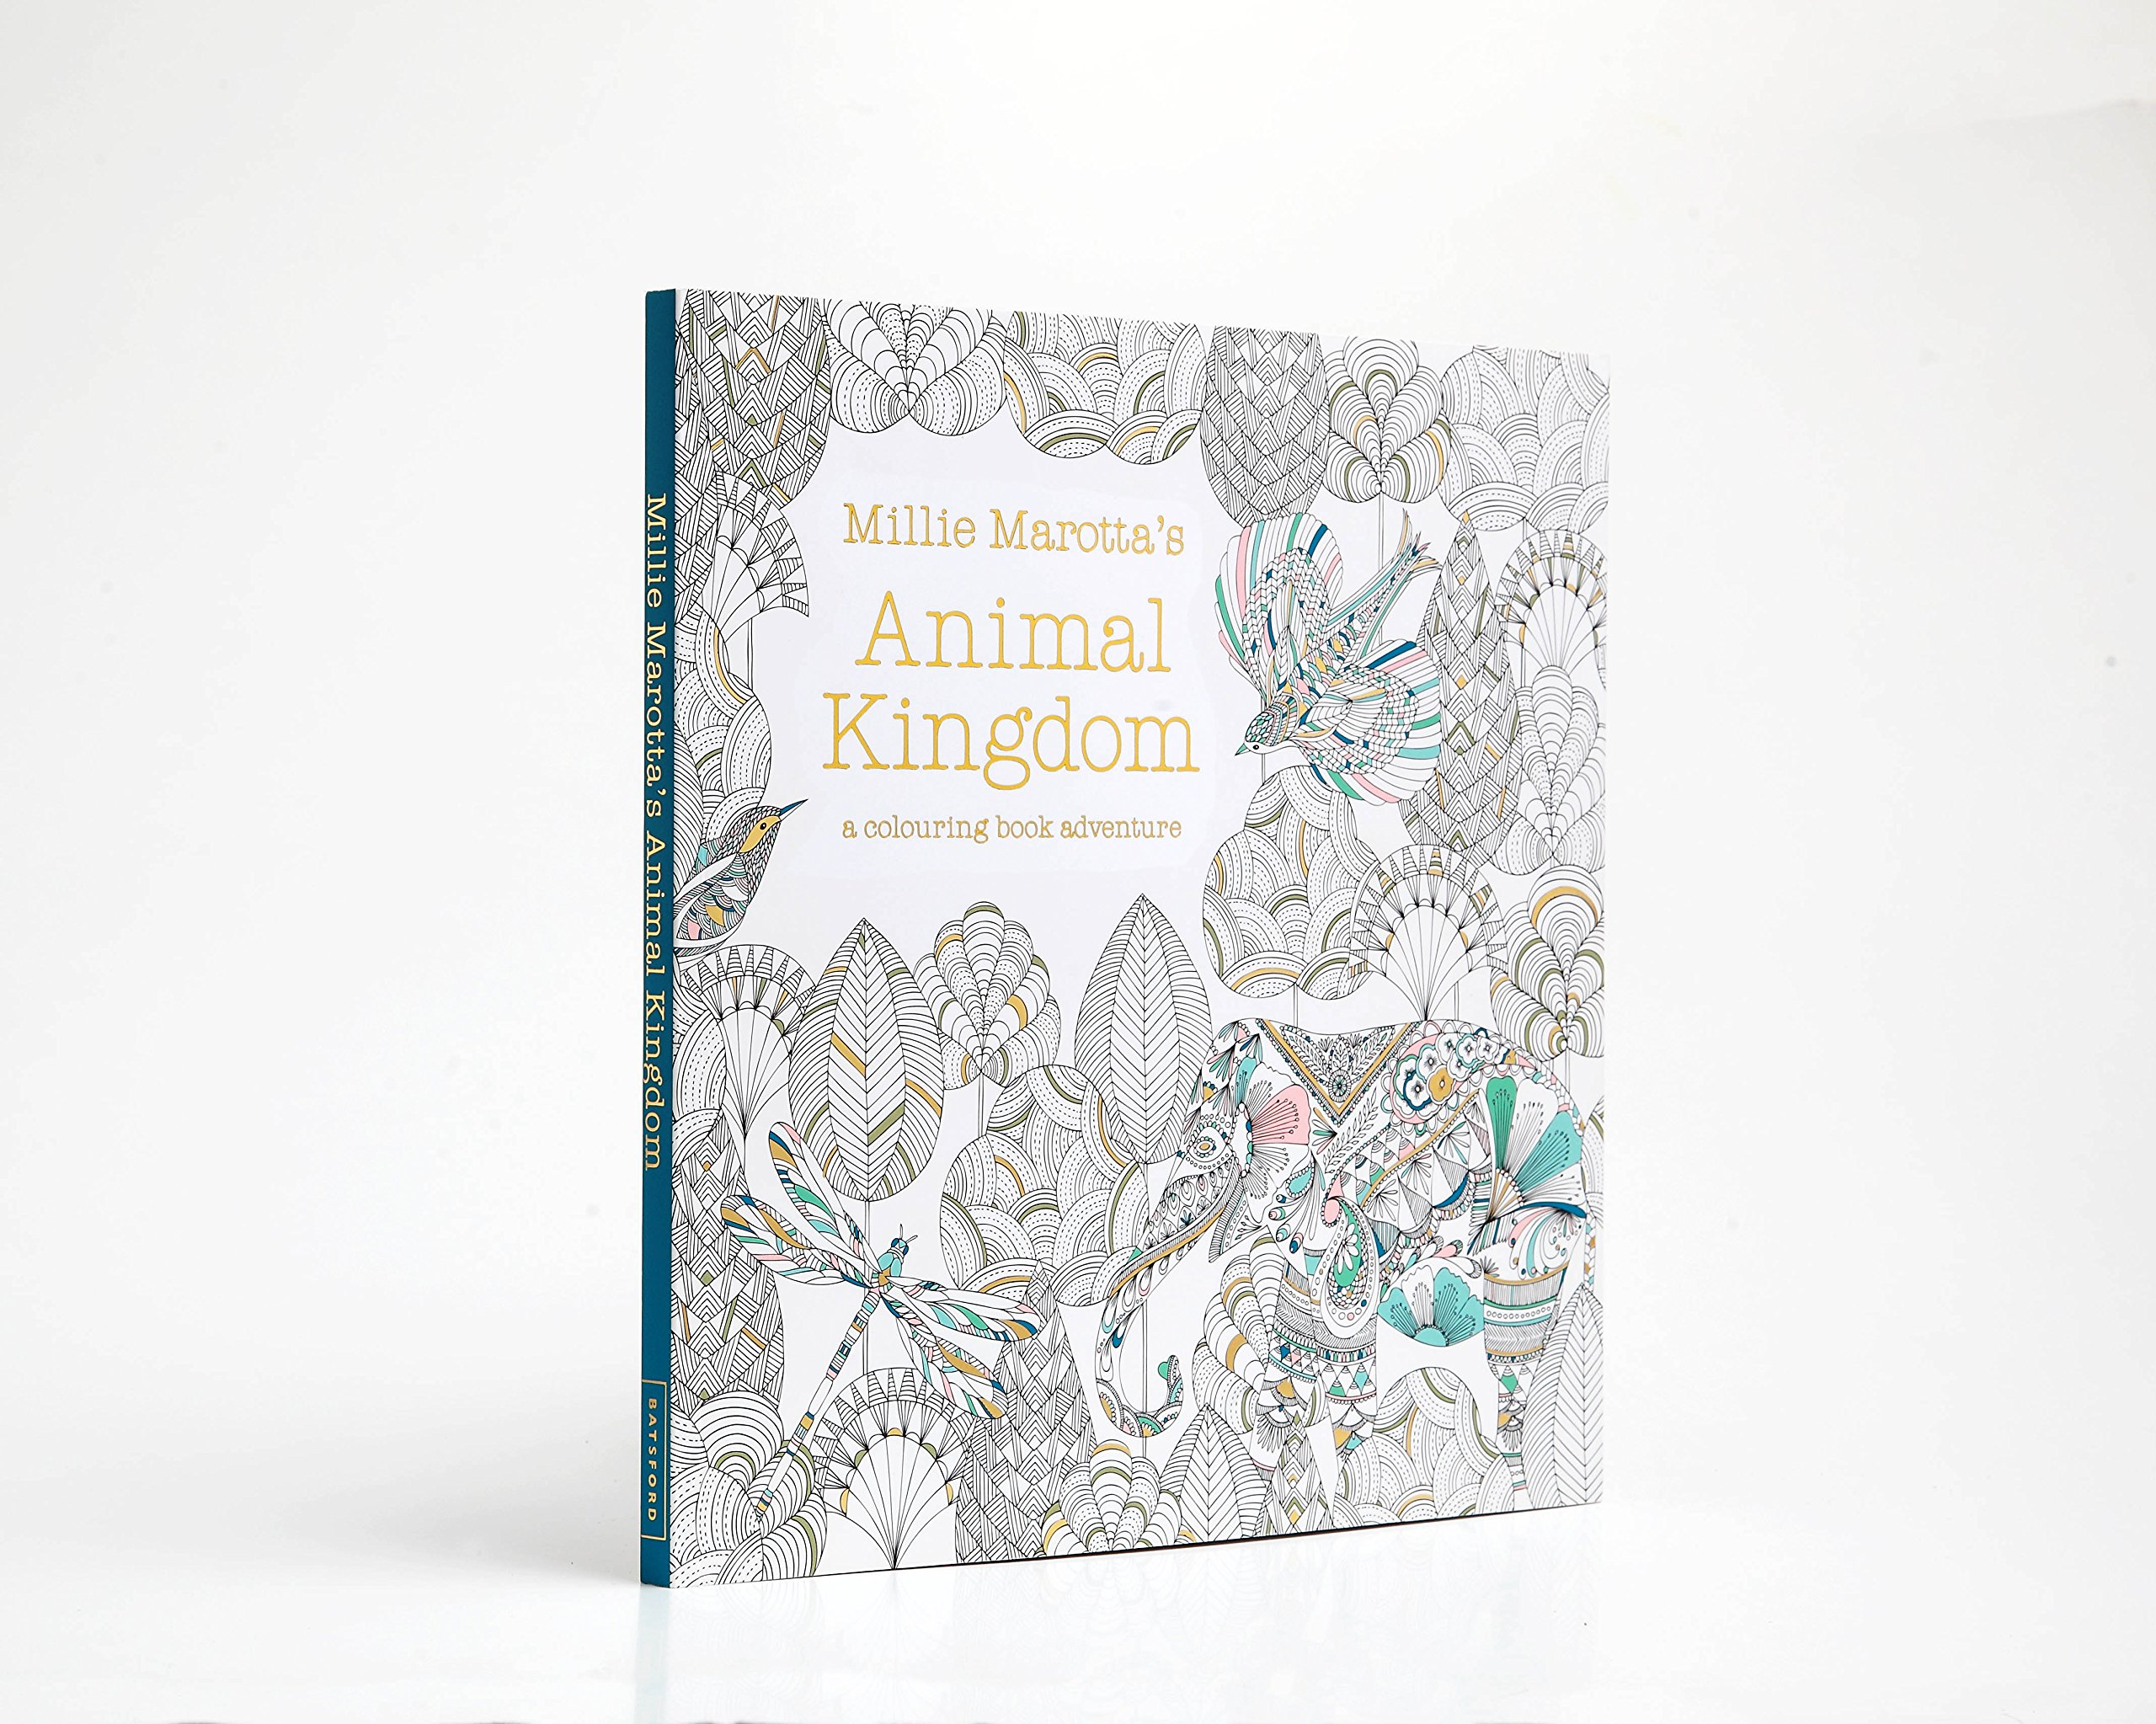 Animal kingdom coloring book gorilla - Millie Marotta S Animal Kingdom A Colouring Book Adventure Amazon Co Uk Millie Marotta Books